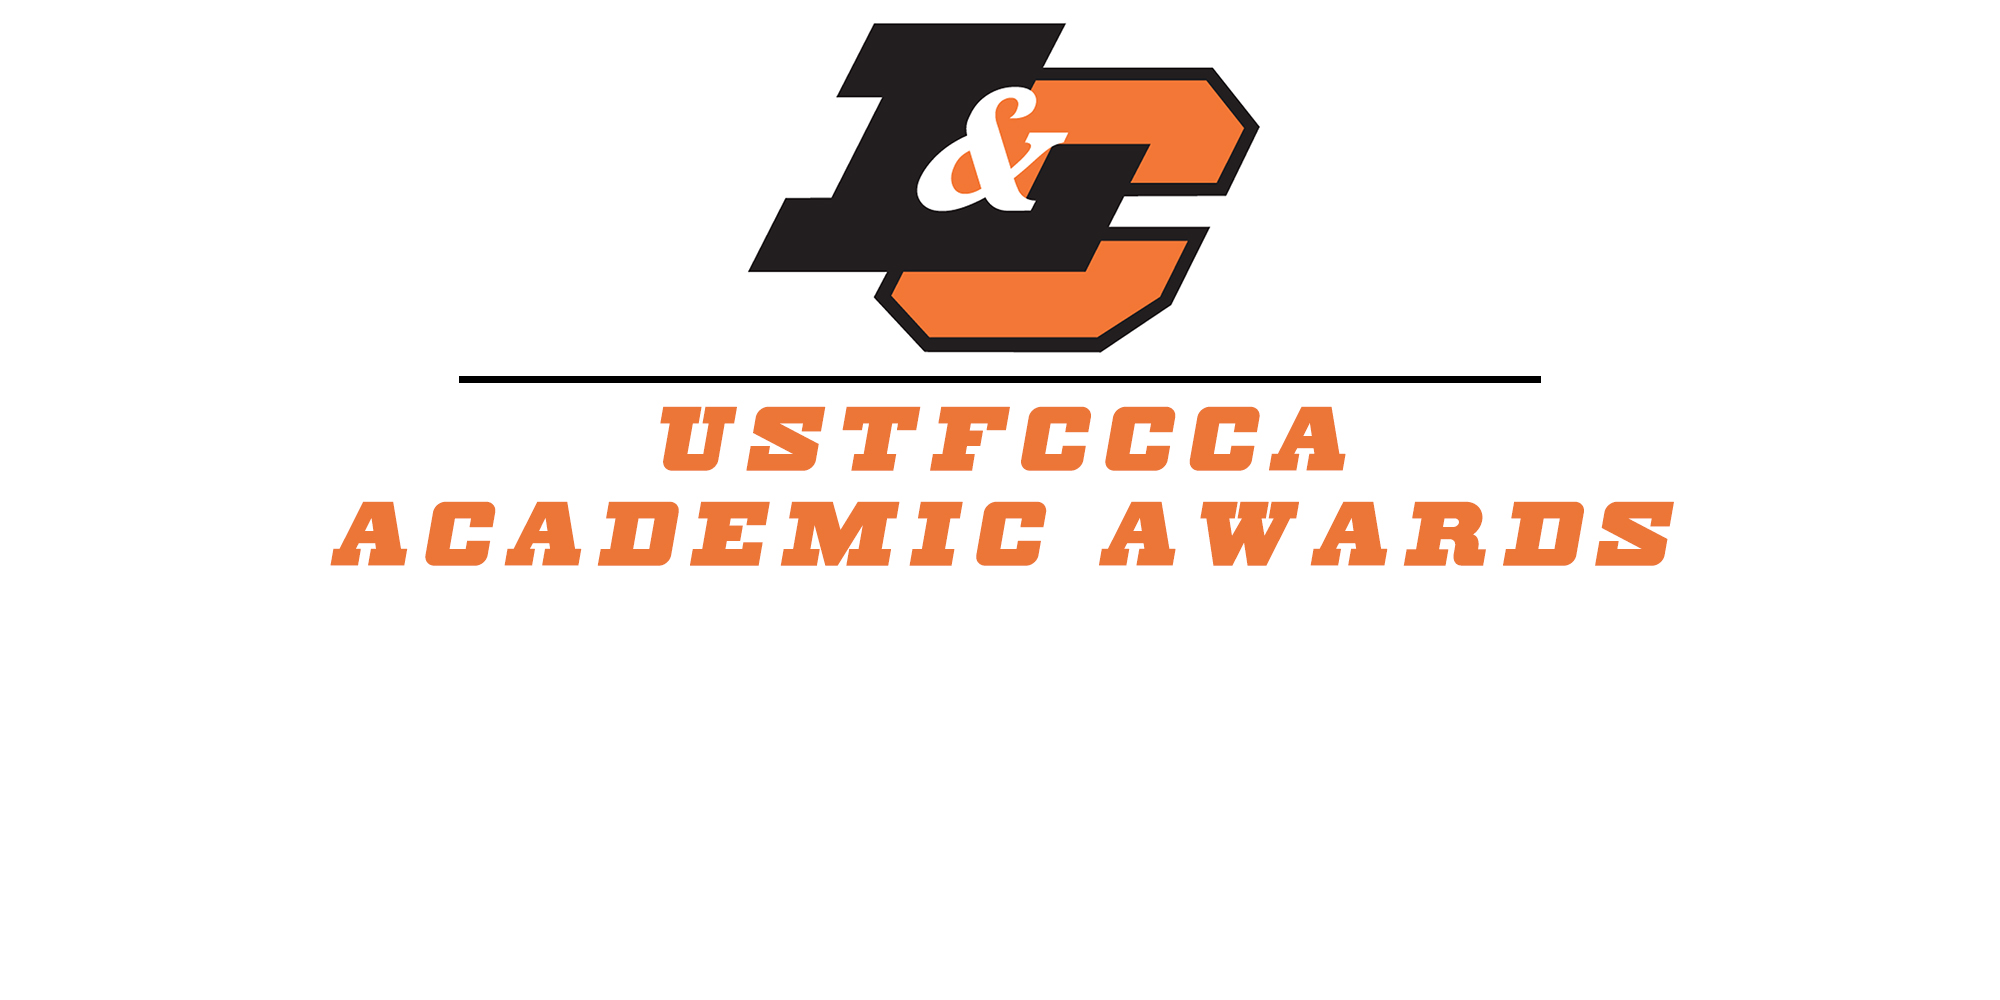 Both teams, two individuals earn USTFCCCA academic awards